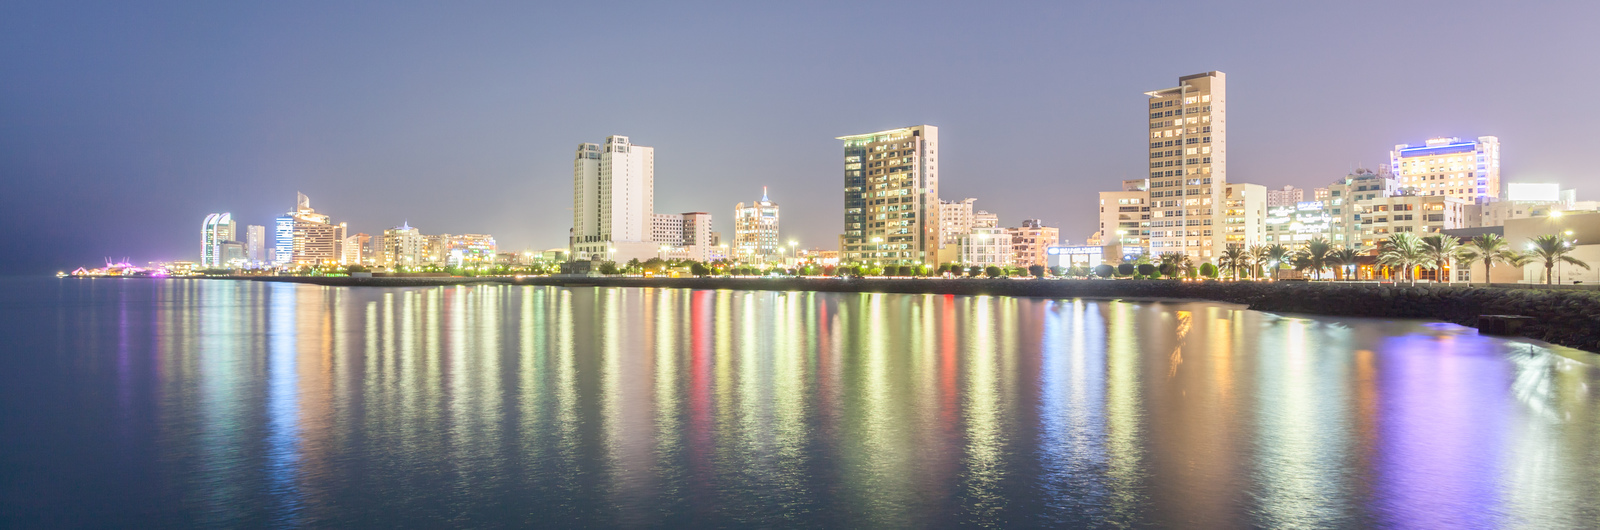 salmiya city header